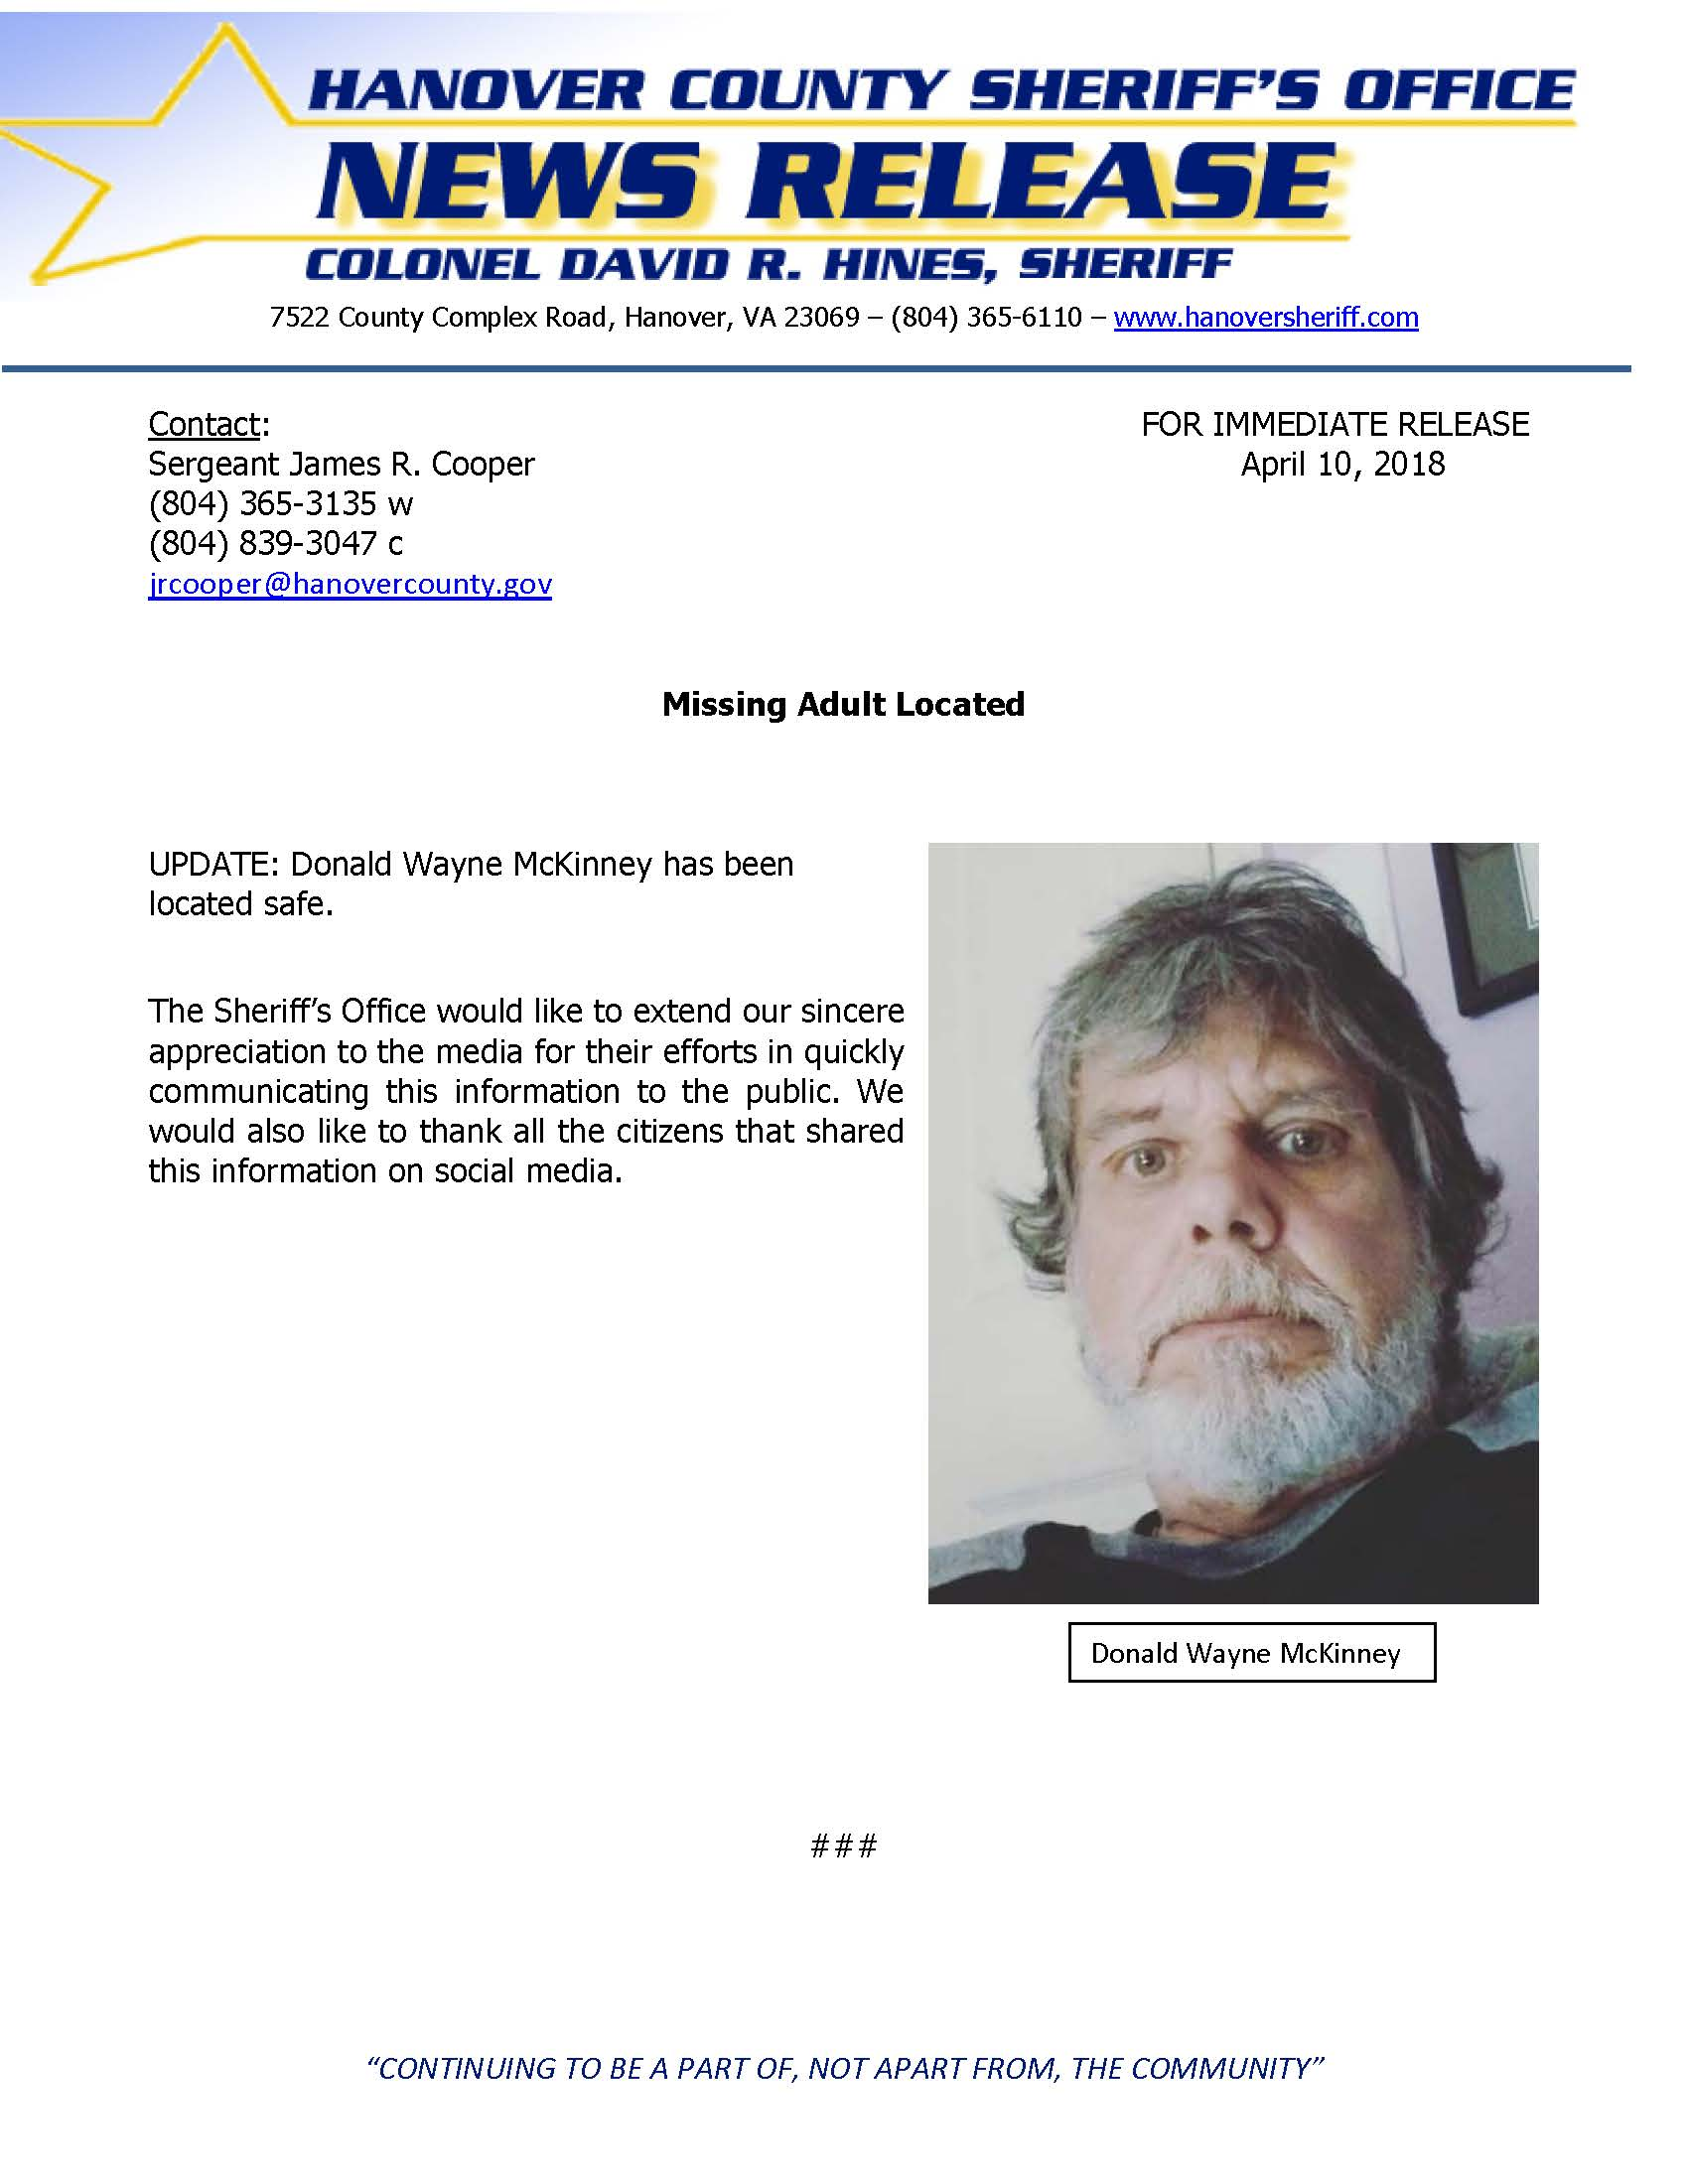 HCSO - Missing Adult LOCATED- Donald McKinney - April 2018